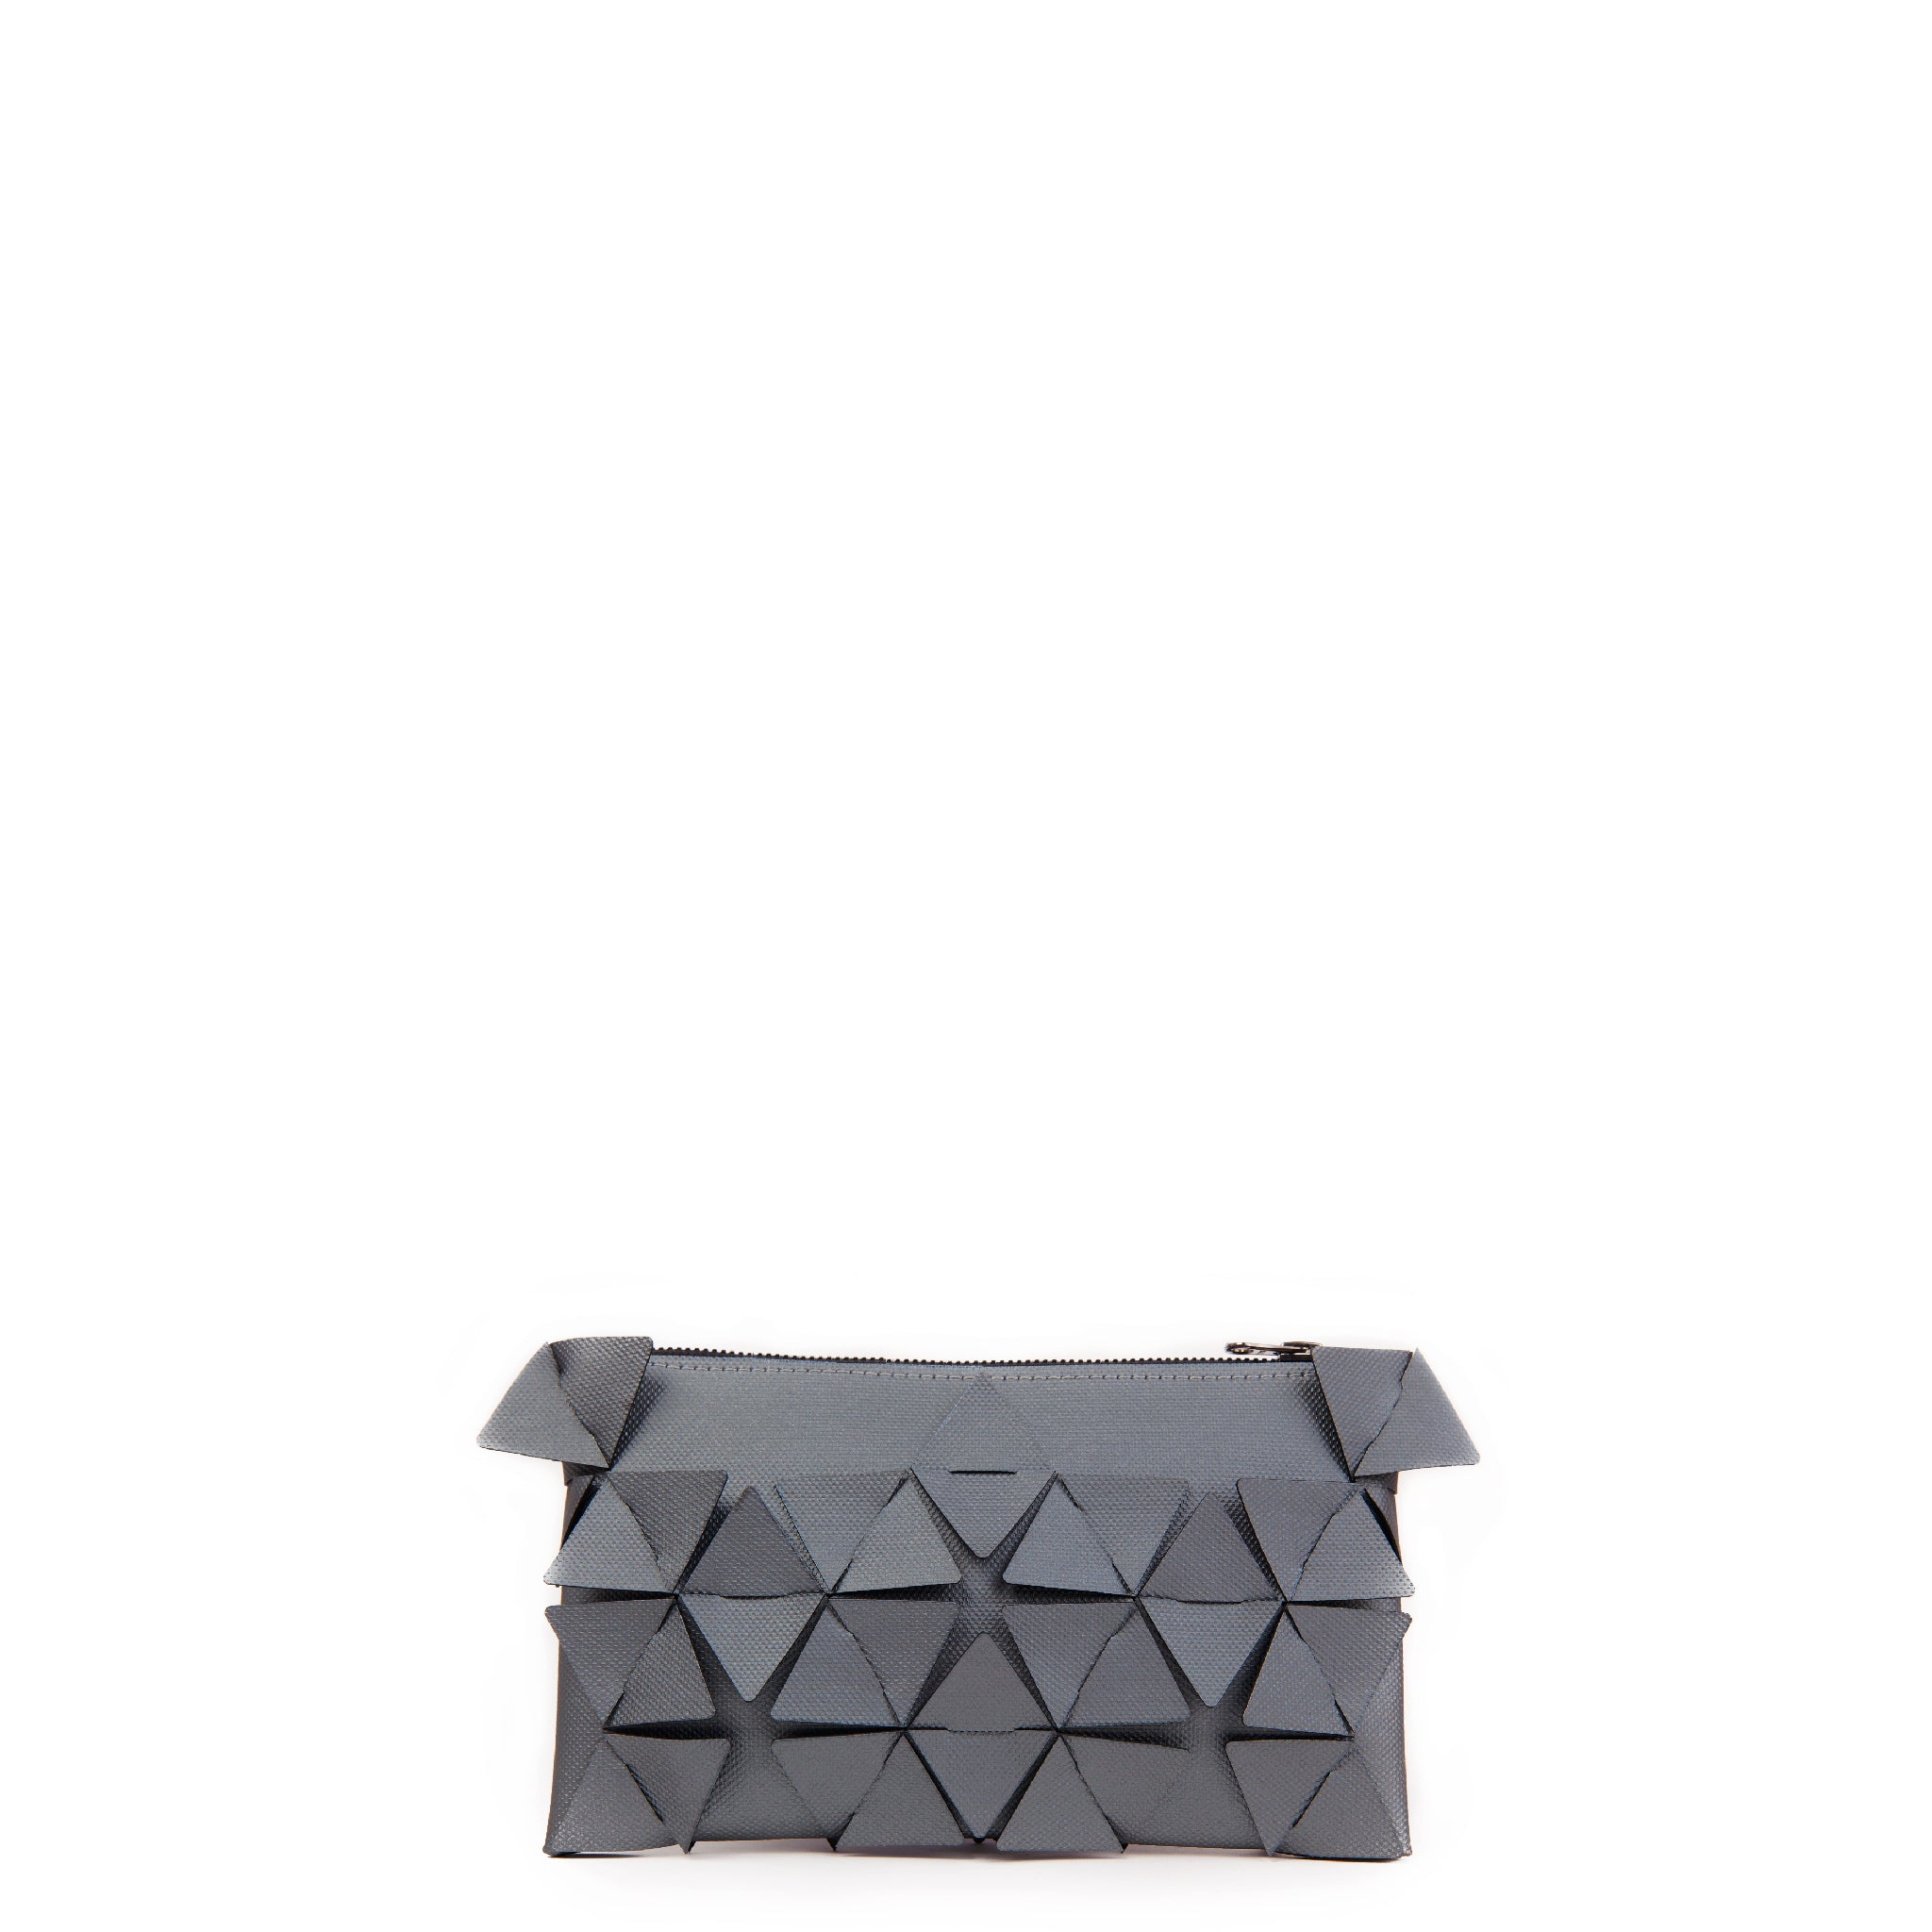 WRISTLET Gray double-sided